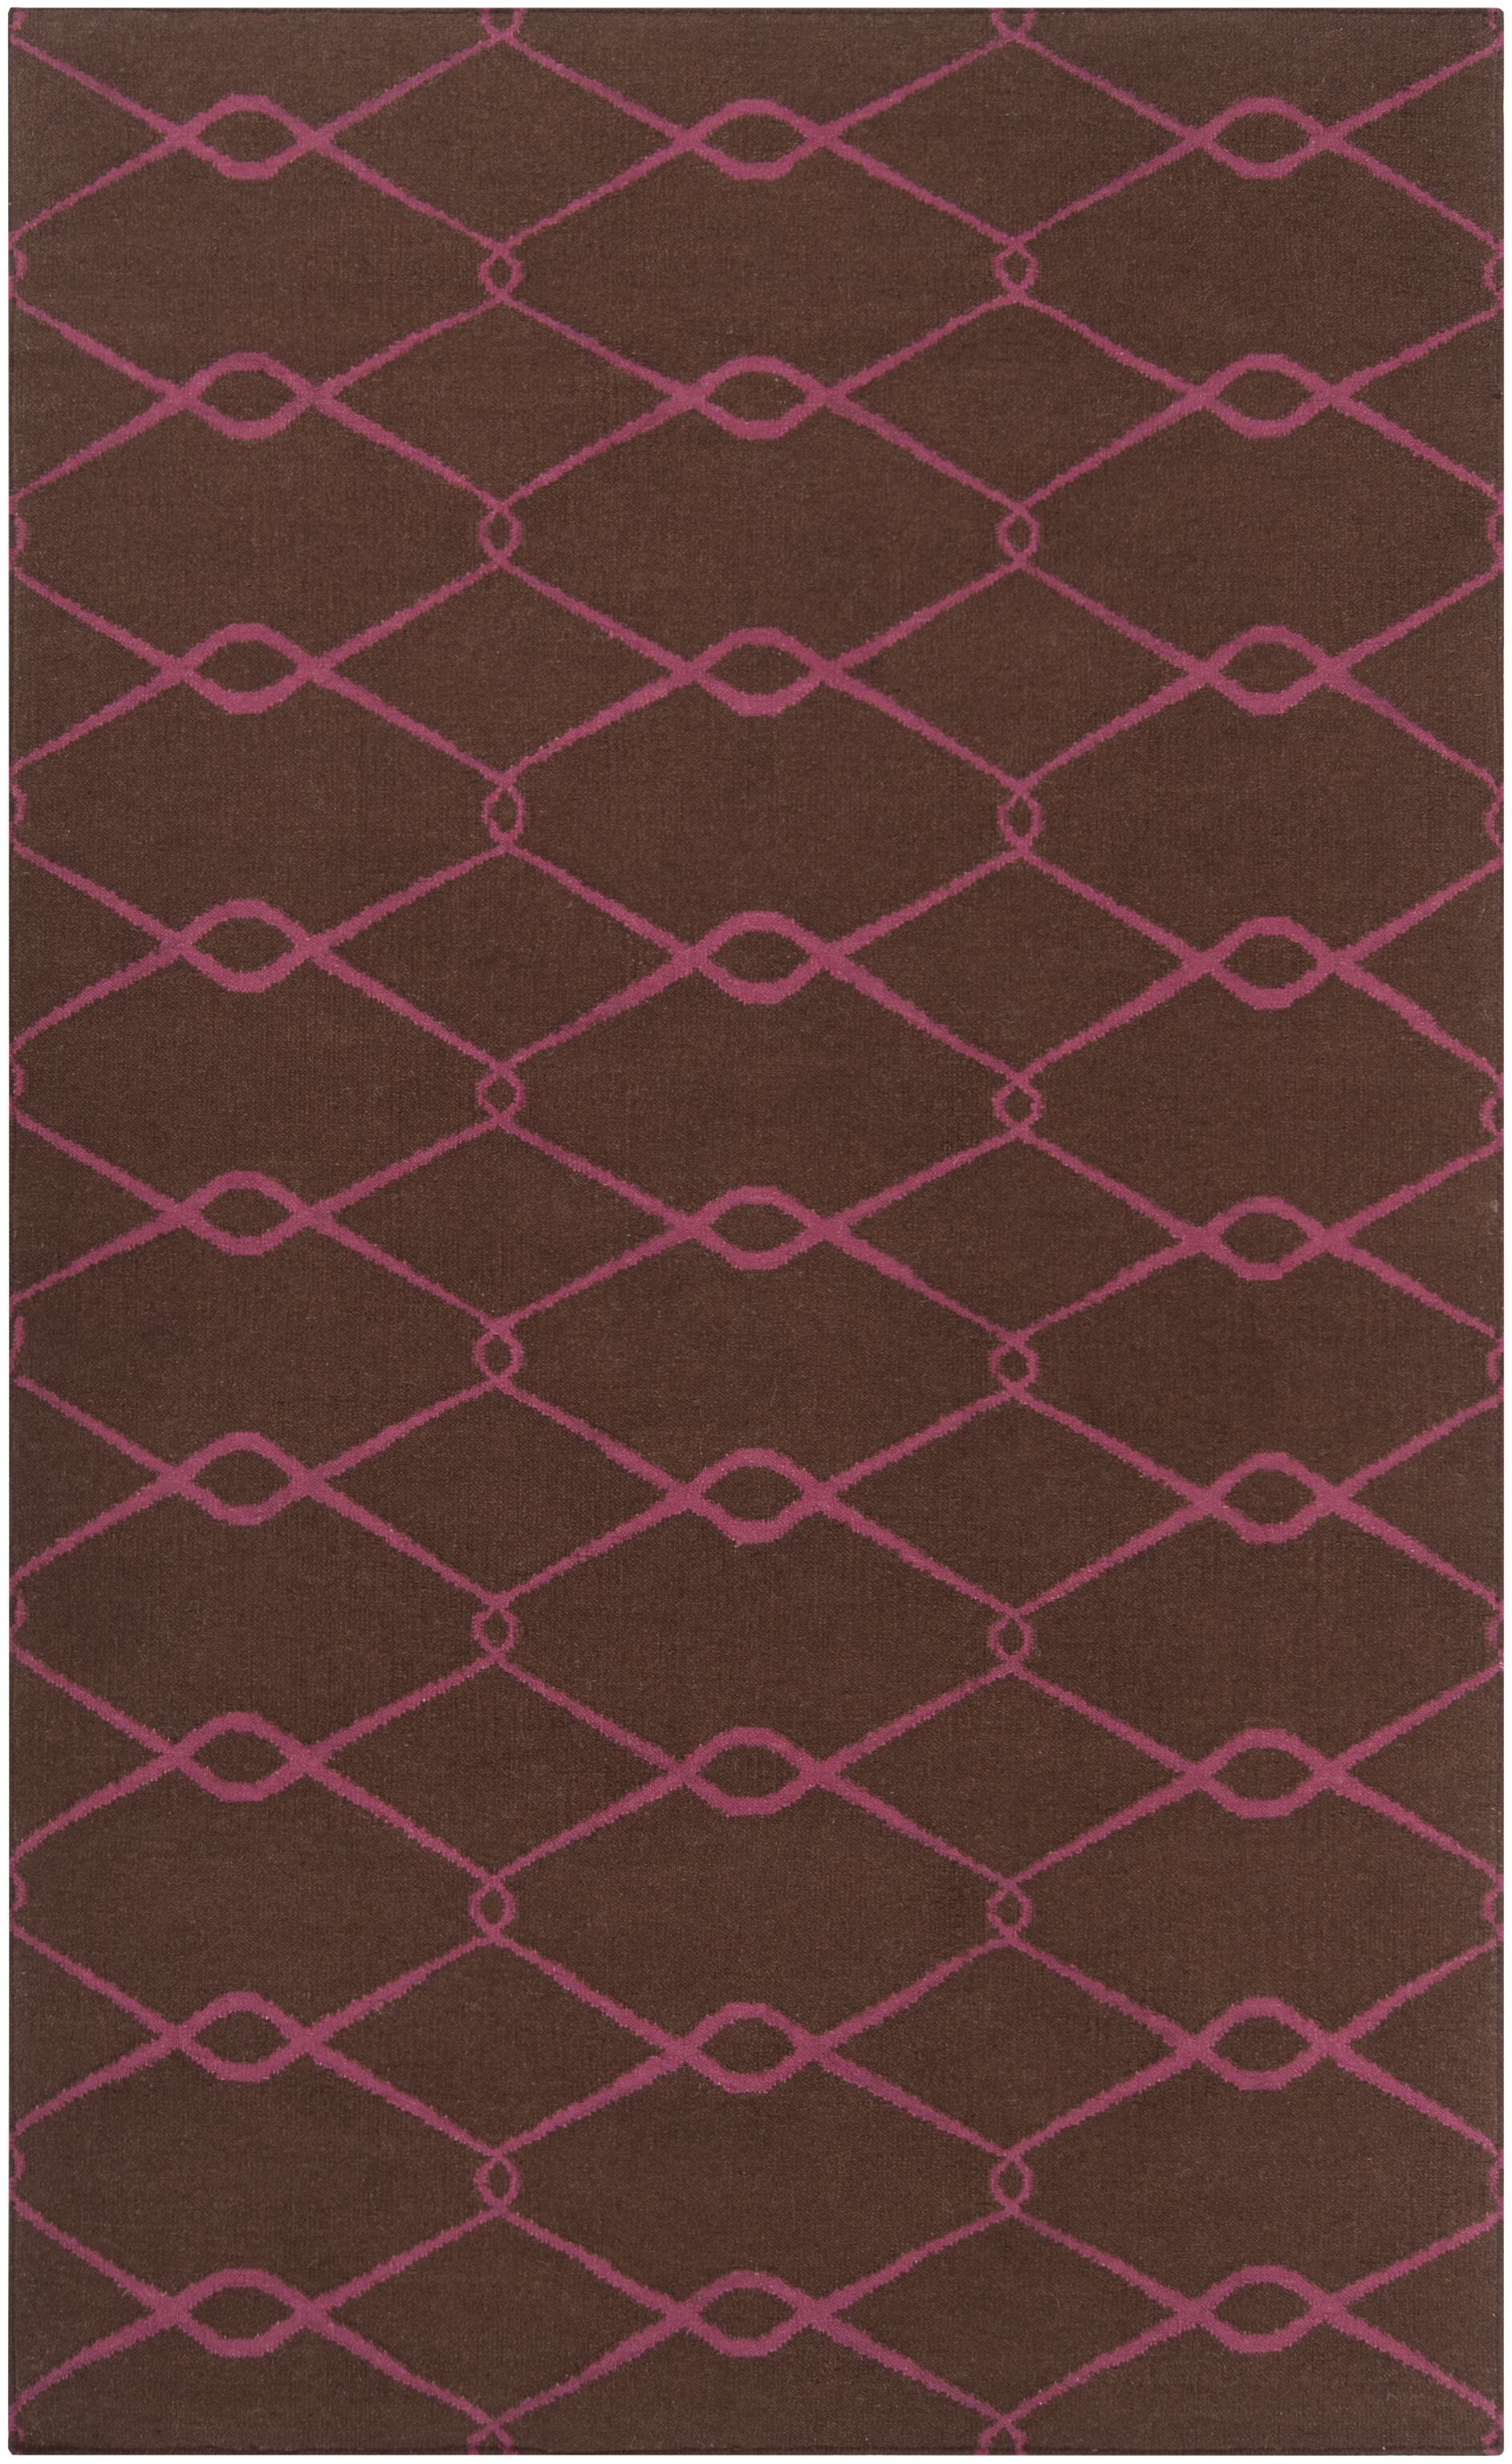 Fallon Hand-Woven Dark Chocolate Area Rug Rug Size: Rectangle 5' x 8'